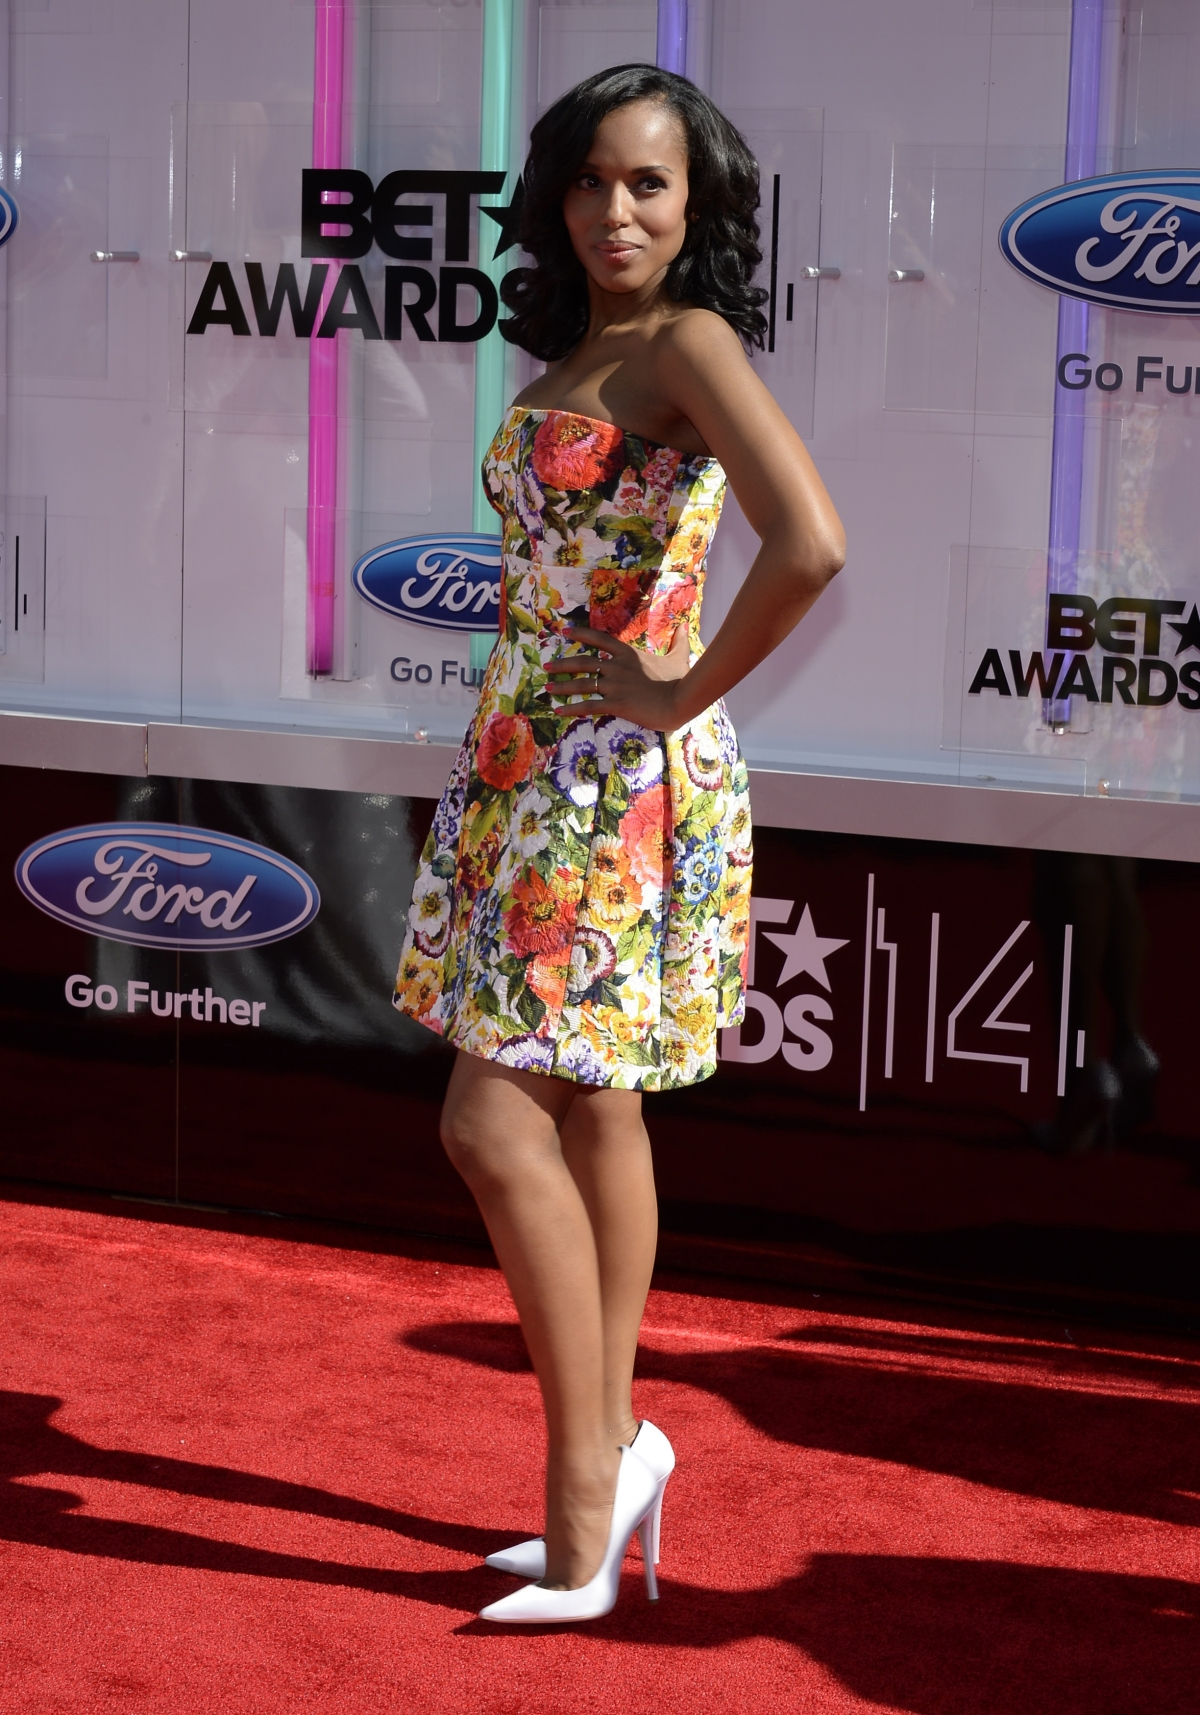 Kerry Washington arrives at the 2014 BET Awards in Los Angeles, California June 29, 2014.